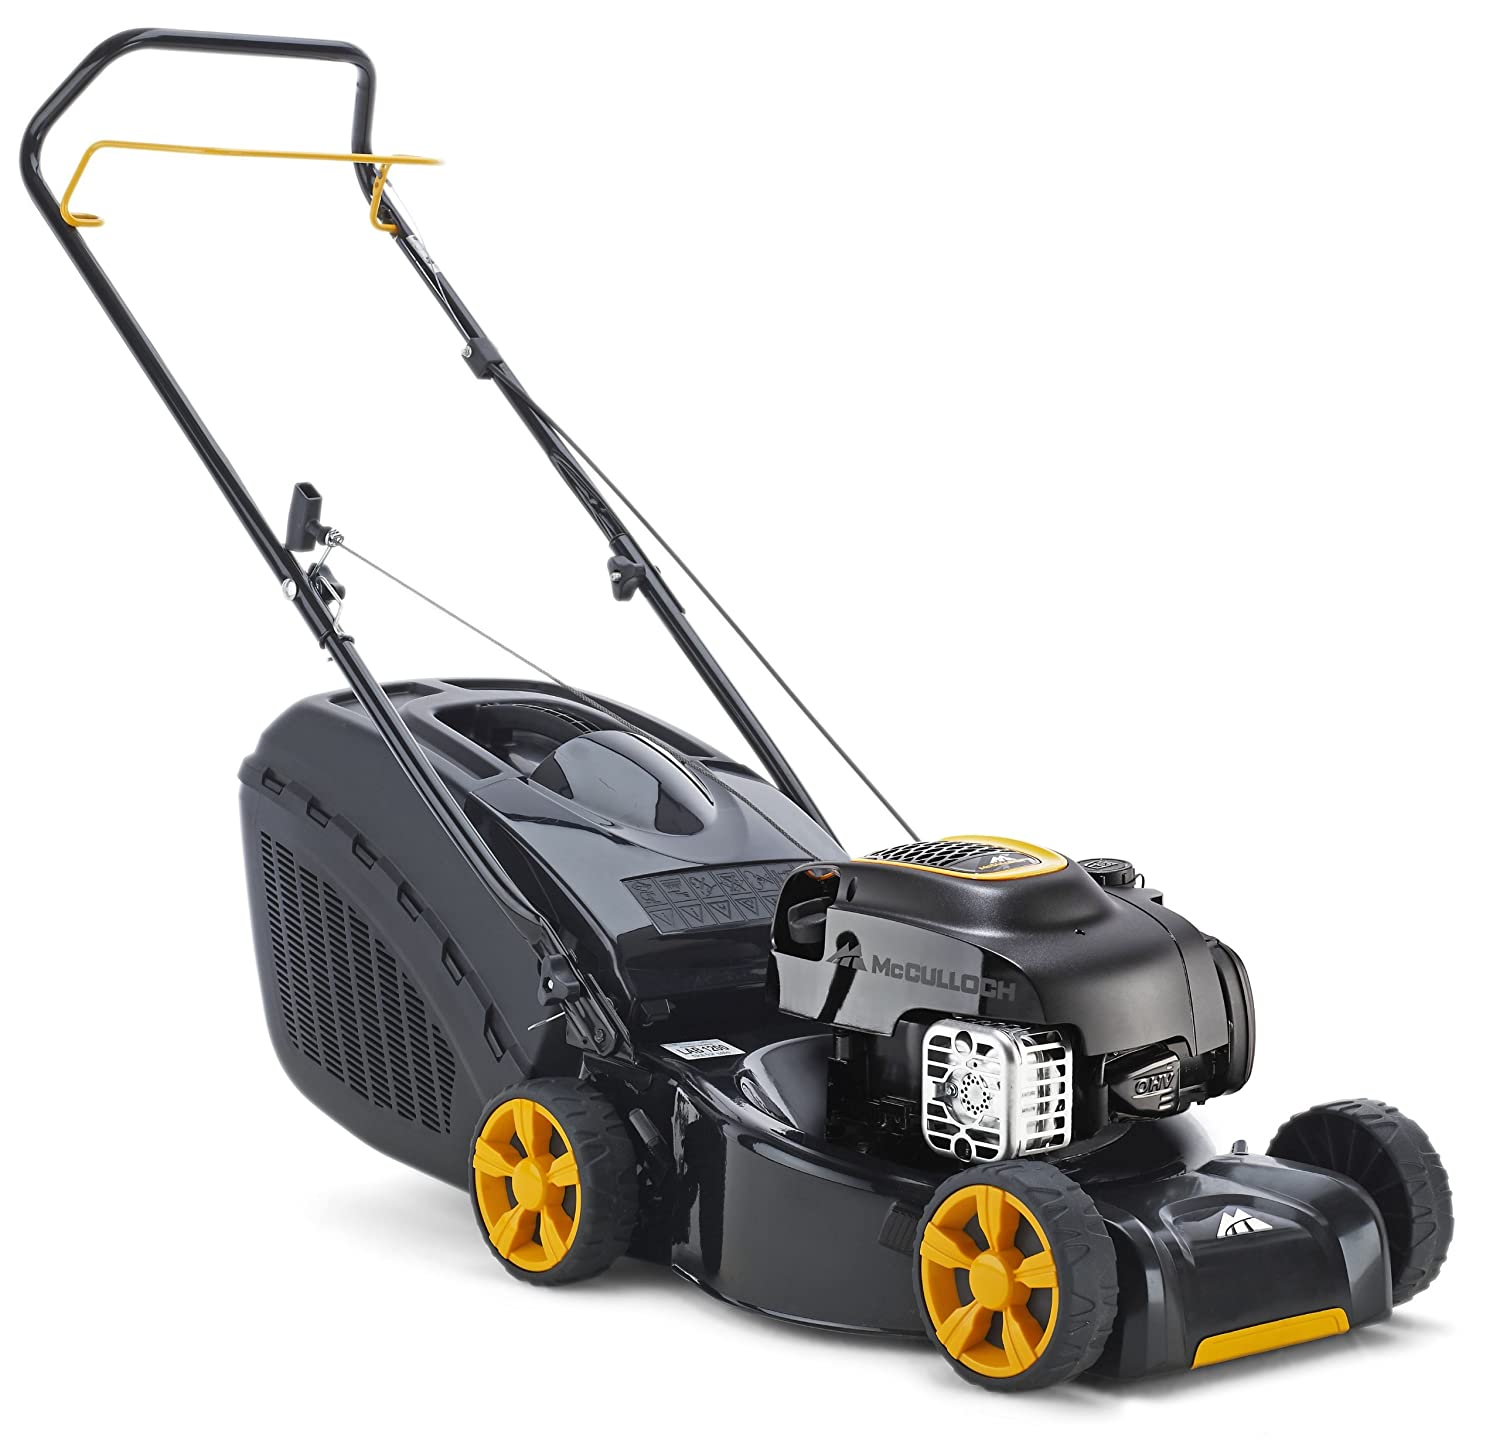 McCulloch M40-125 Petrol Push Collect Lawn Mower, 1600 W, Black, 125 cc, 40 cm Cutting Width